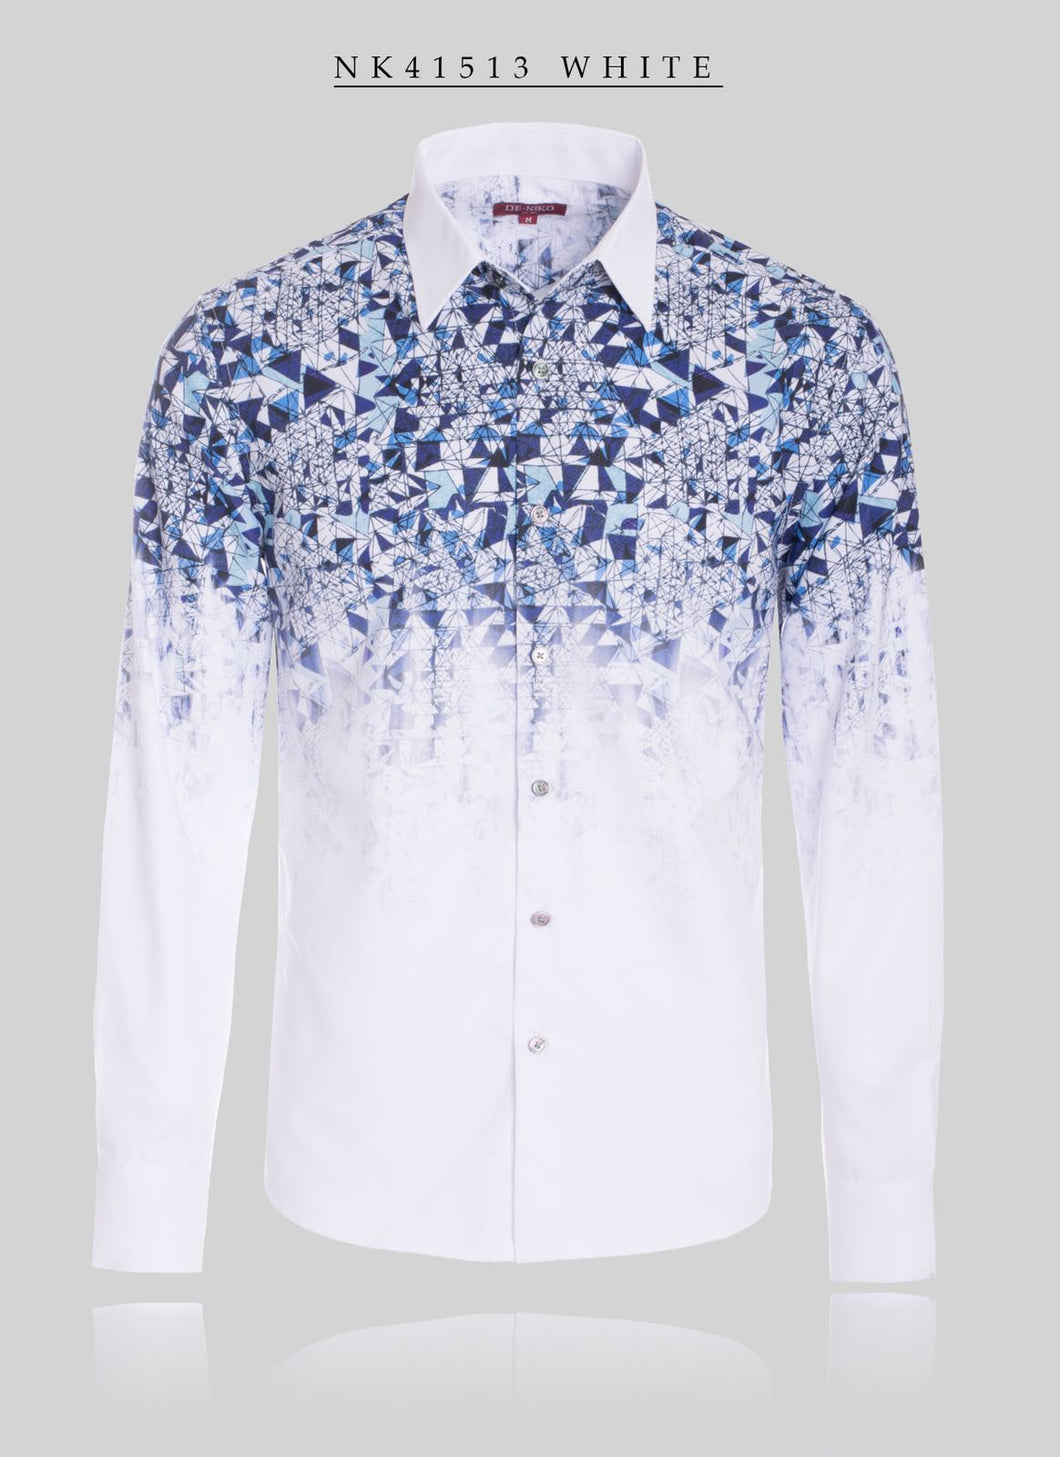 Overlapping Fading Pattern Dress Shirt STYLE#NK41513